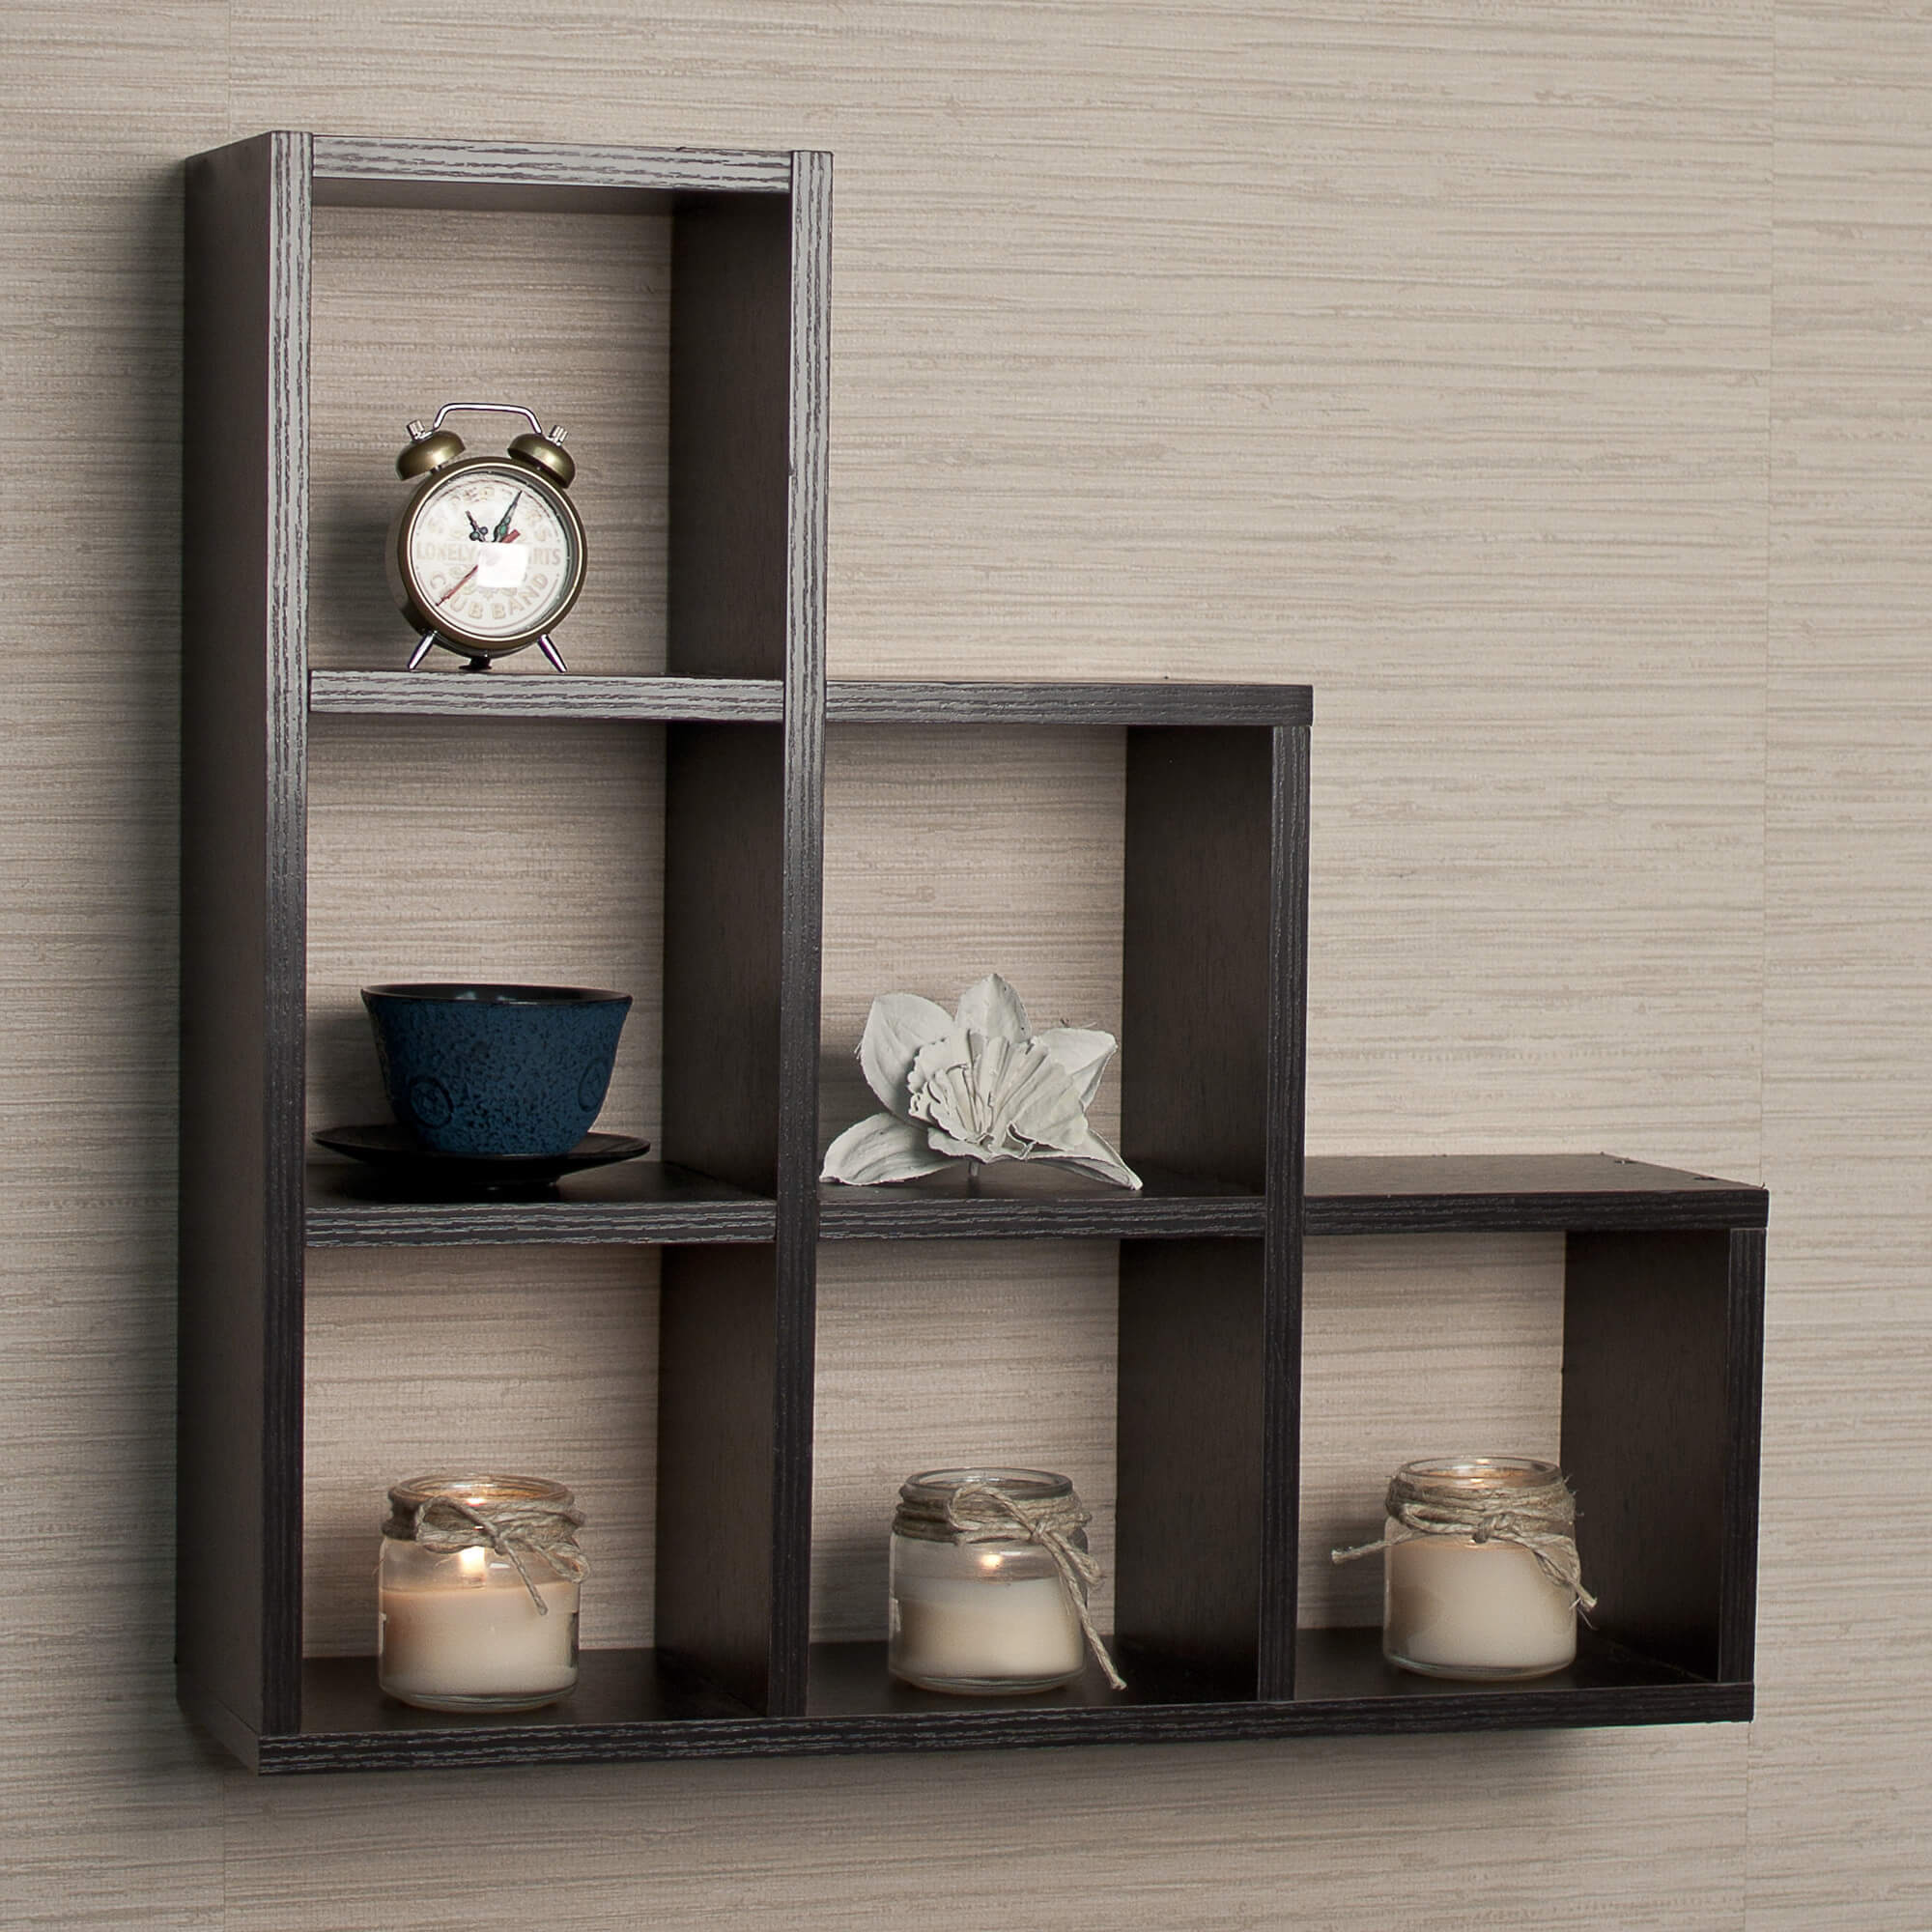 Shelves On The Wall 17 Types Of Cube Shelves Bookcases And Storage Options